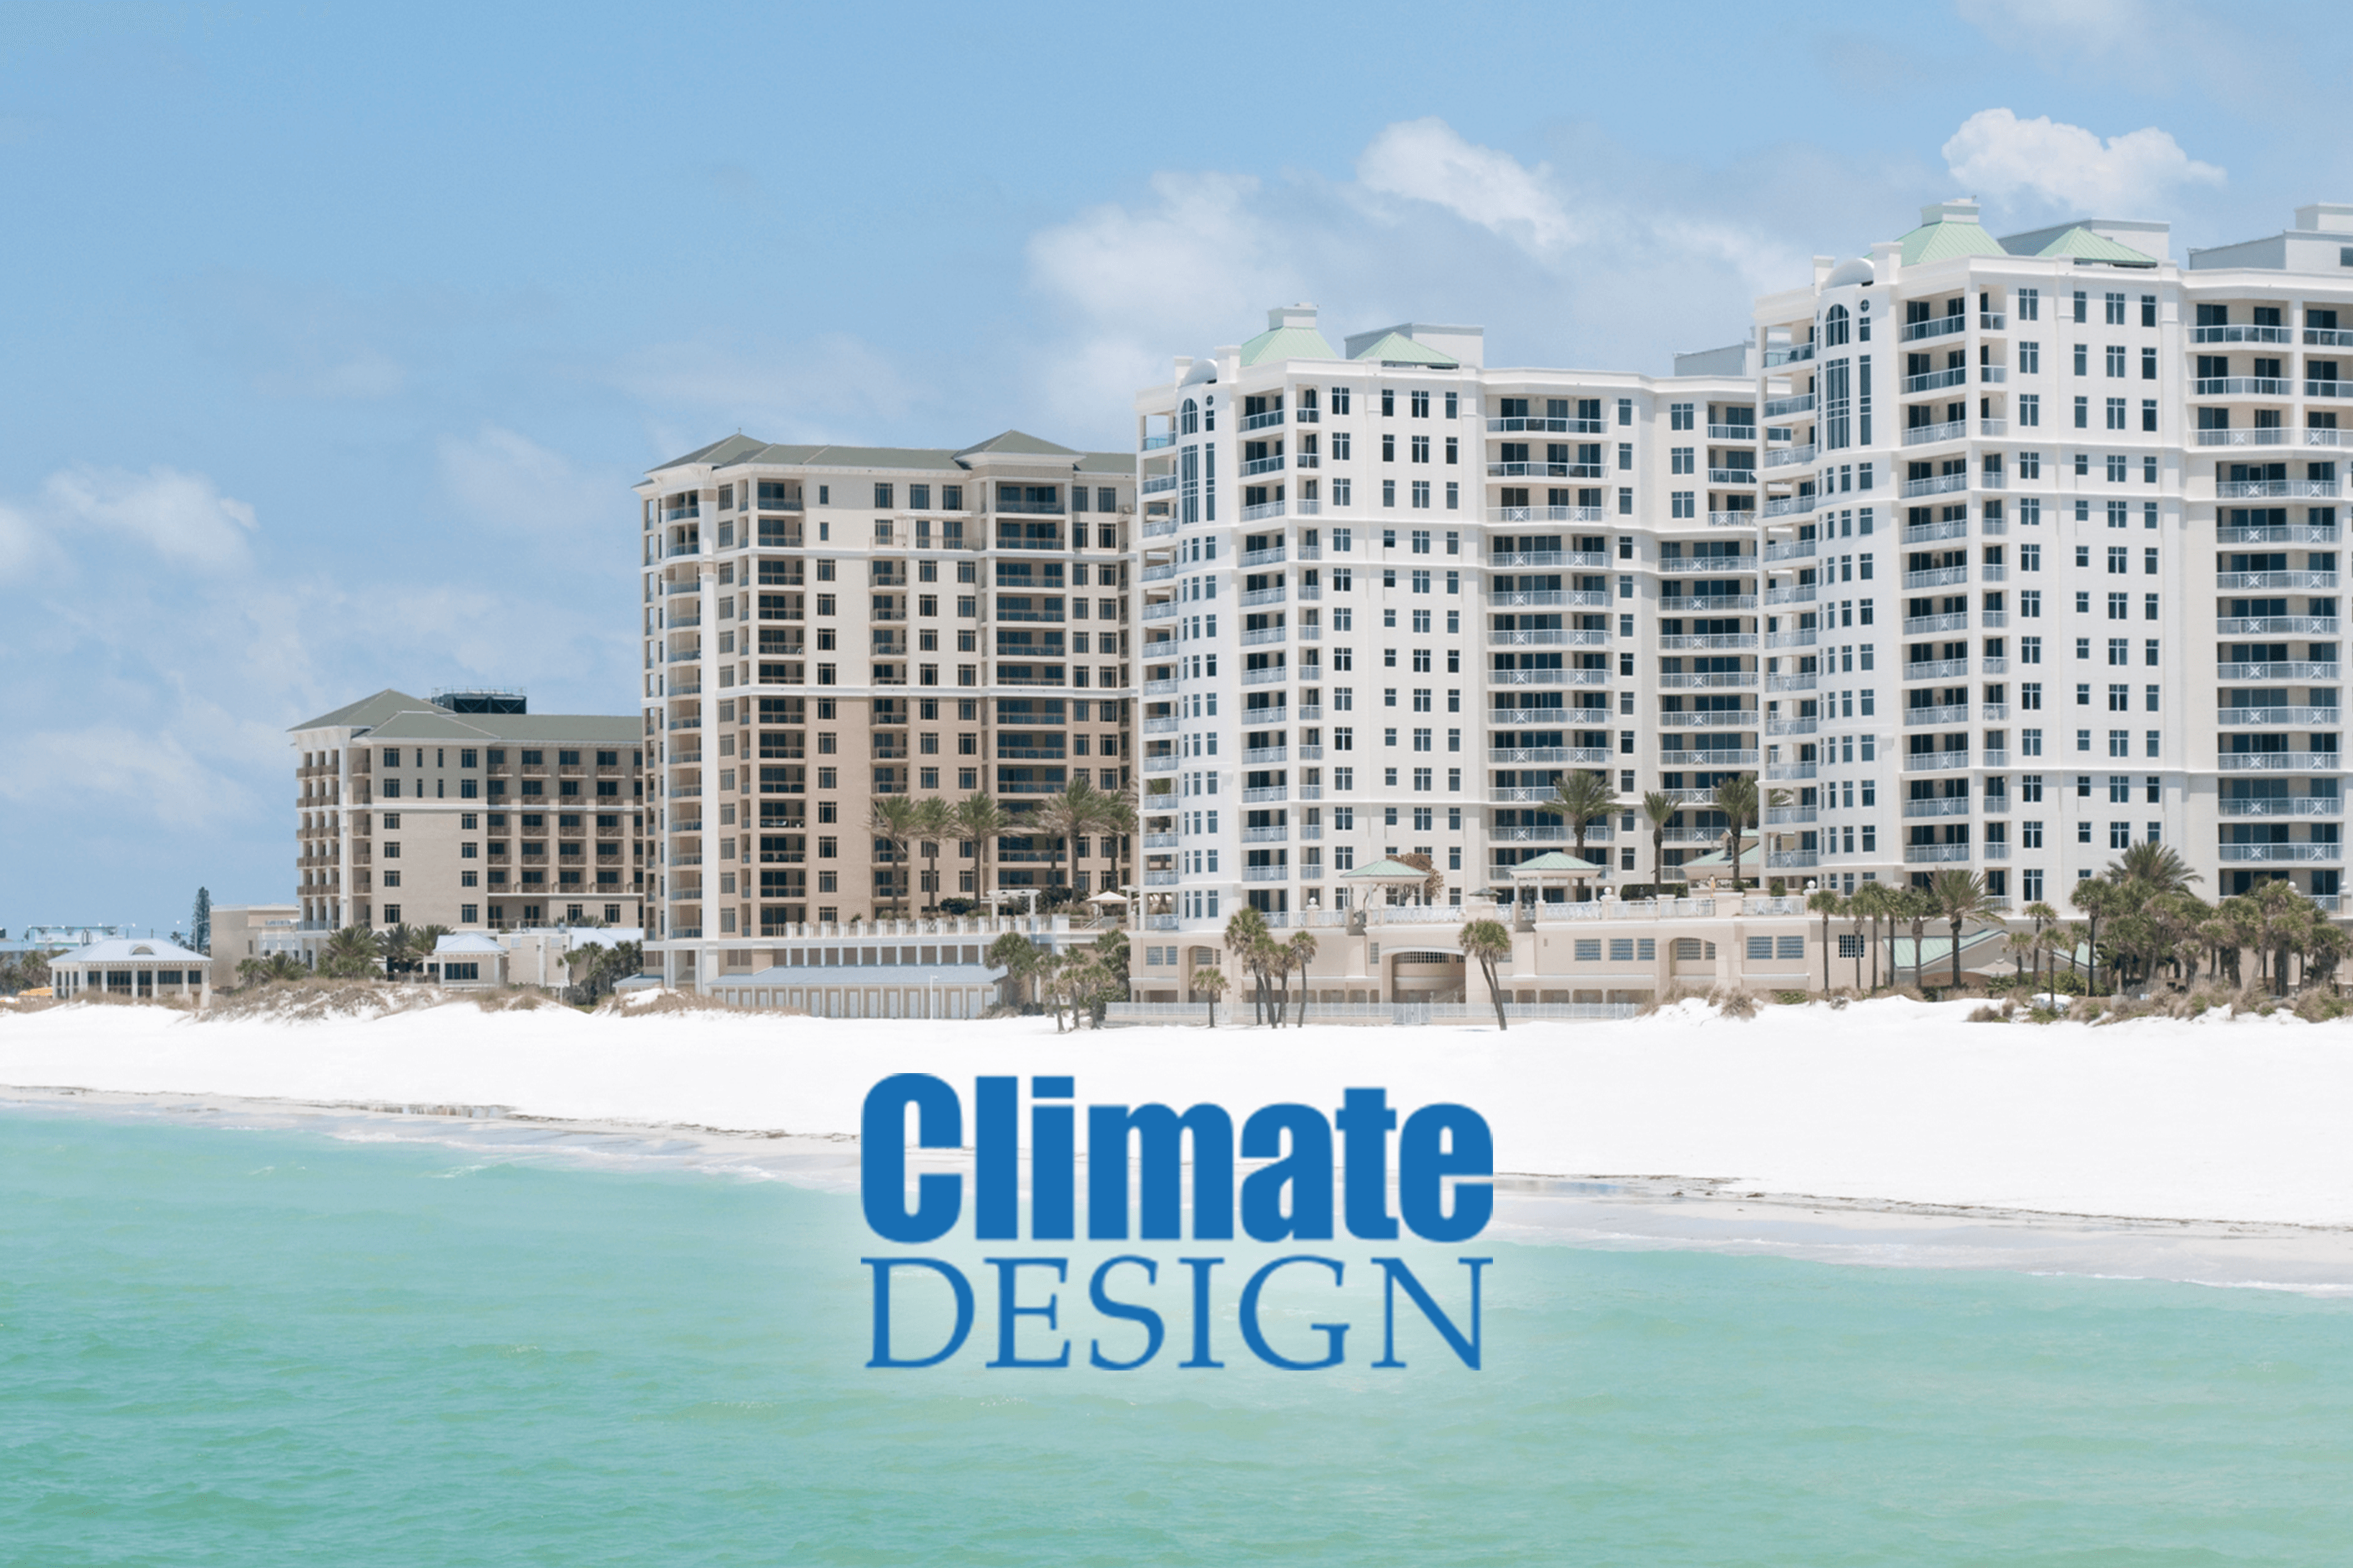 In 1992 The Climate Design Team Began Installing Air Conditioning